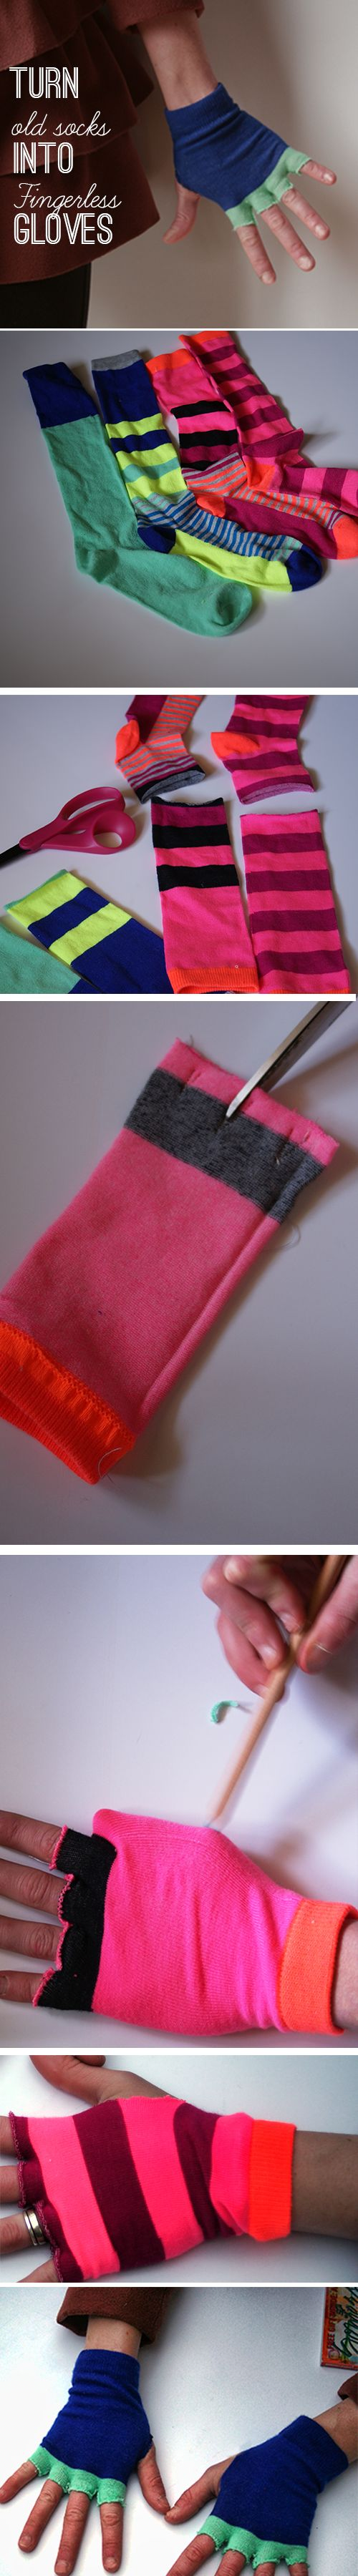 DIY gloves from old socks